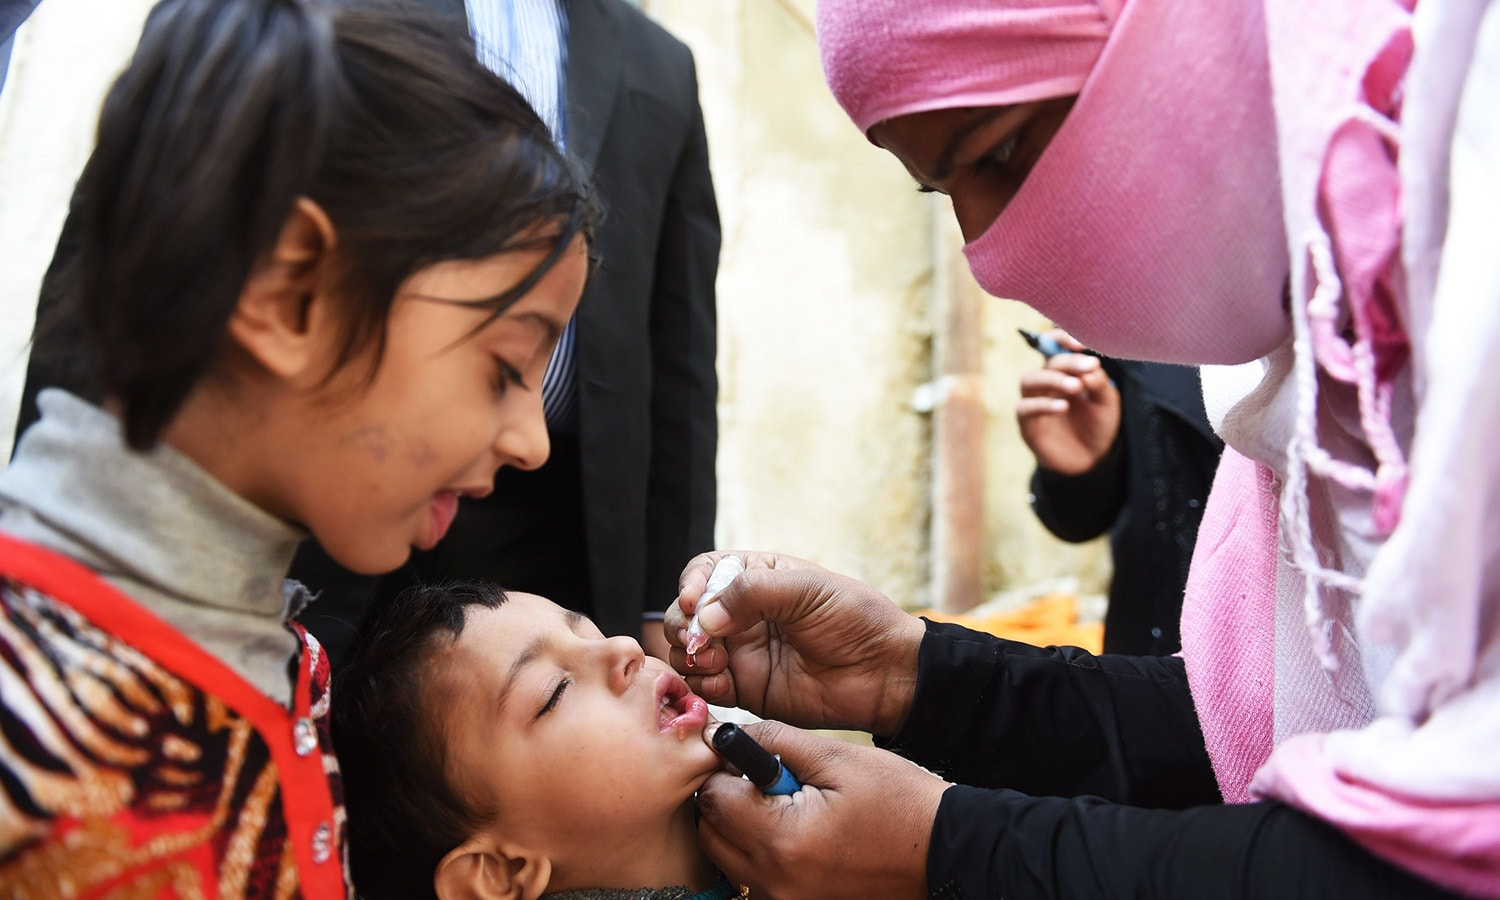 A Pakistani health worker administers polio drops to a child during a polio vaccination campaign in Karachi.—AFP